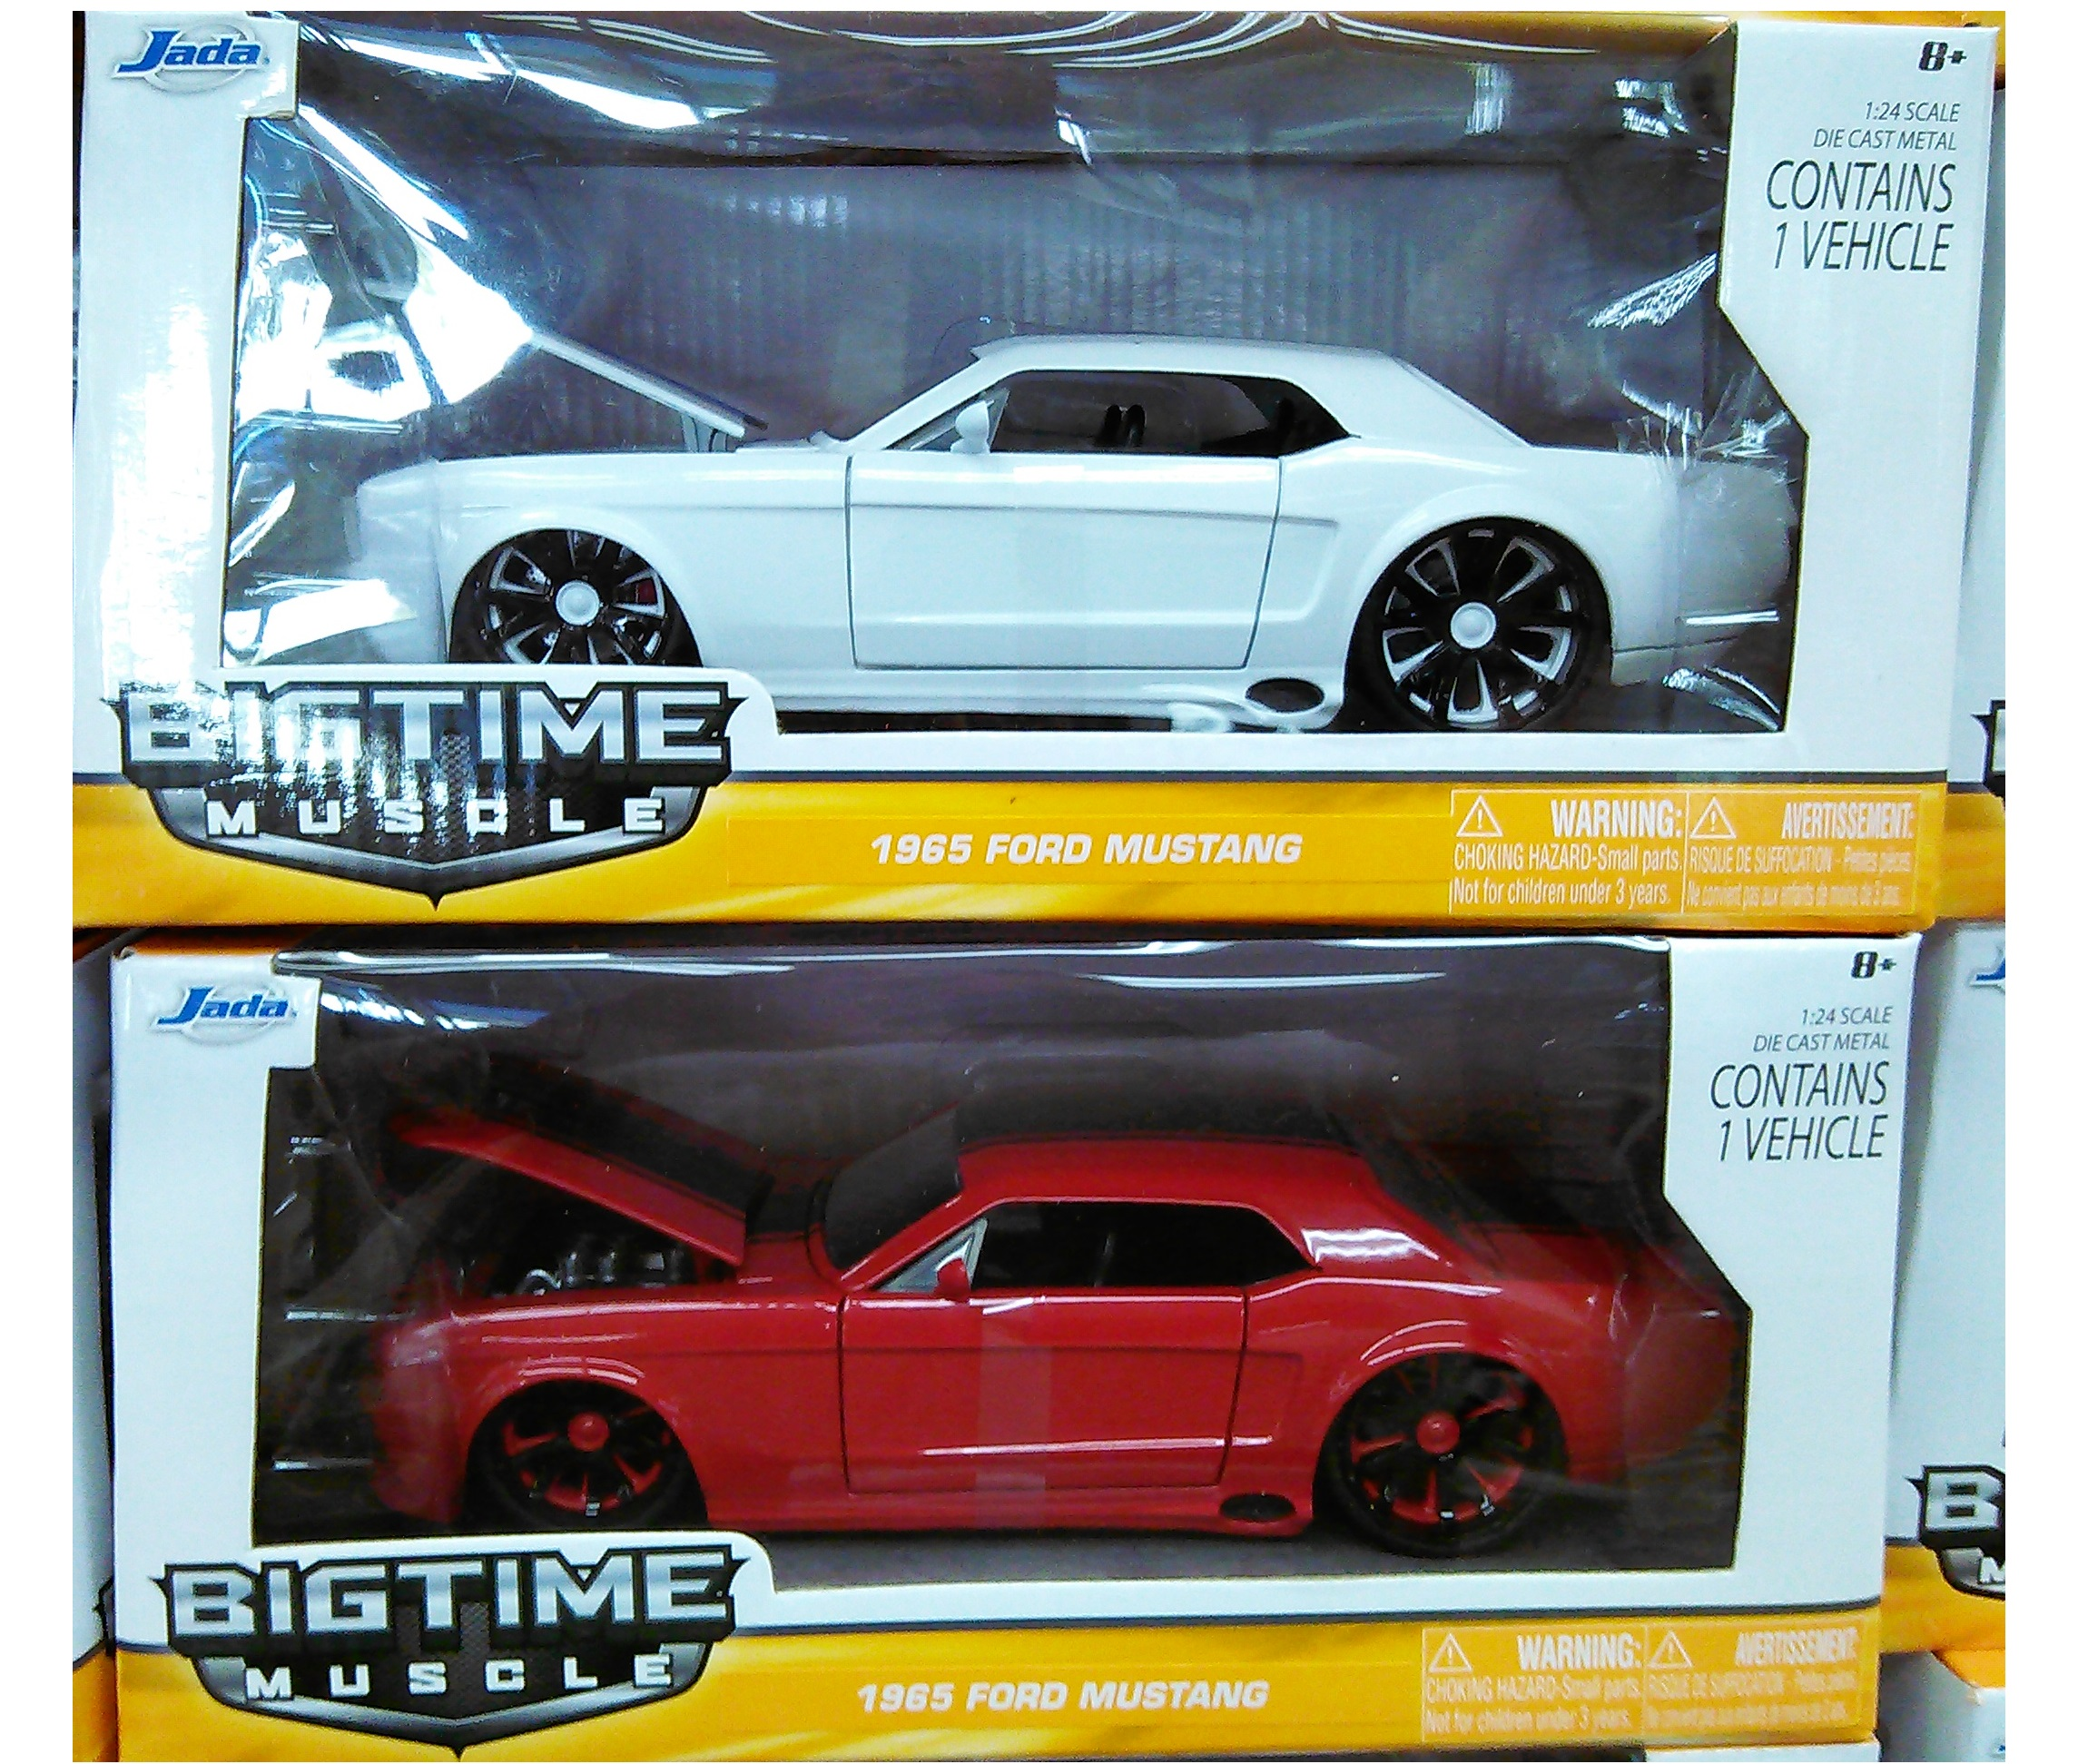 World famous classic toys ford mustang gt ford mustang boss 302 ford mustang fastback ford mustang boss 429 mustang convertible